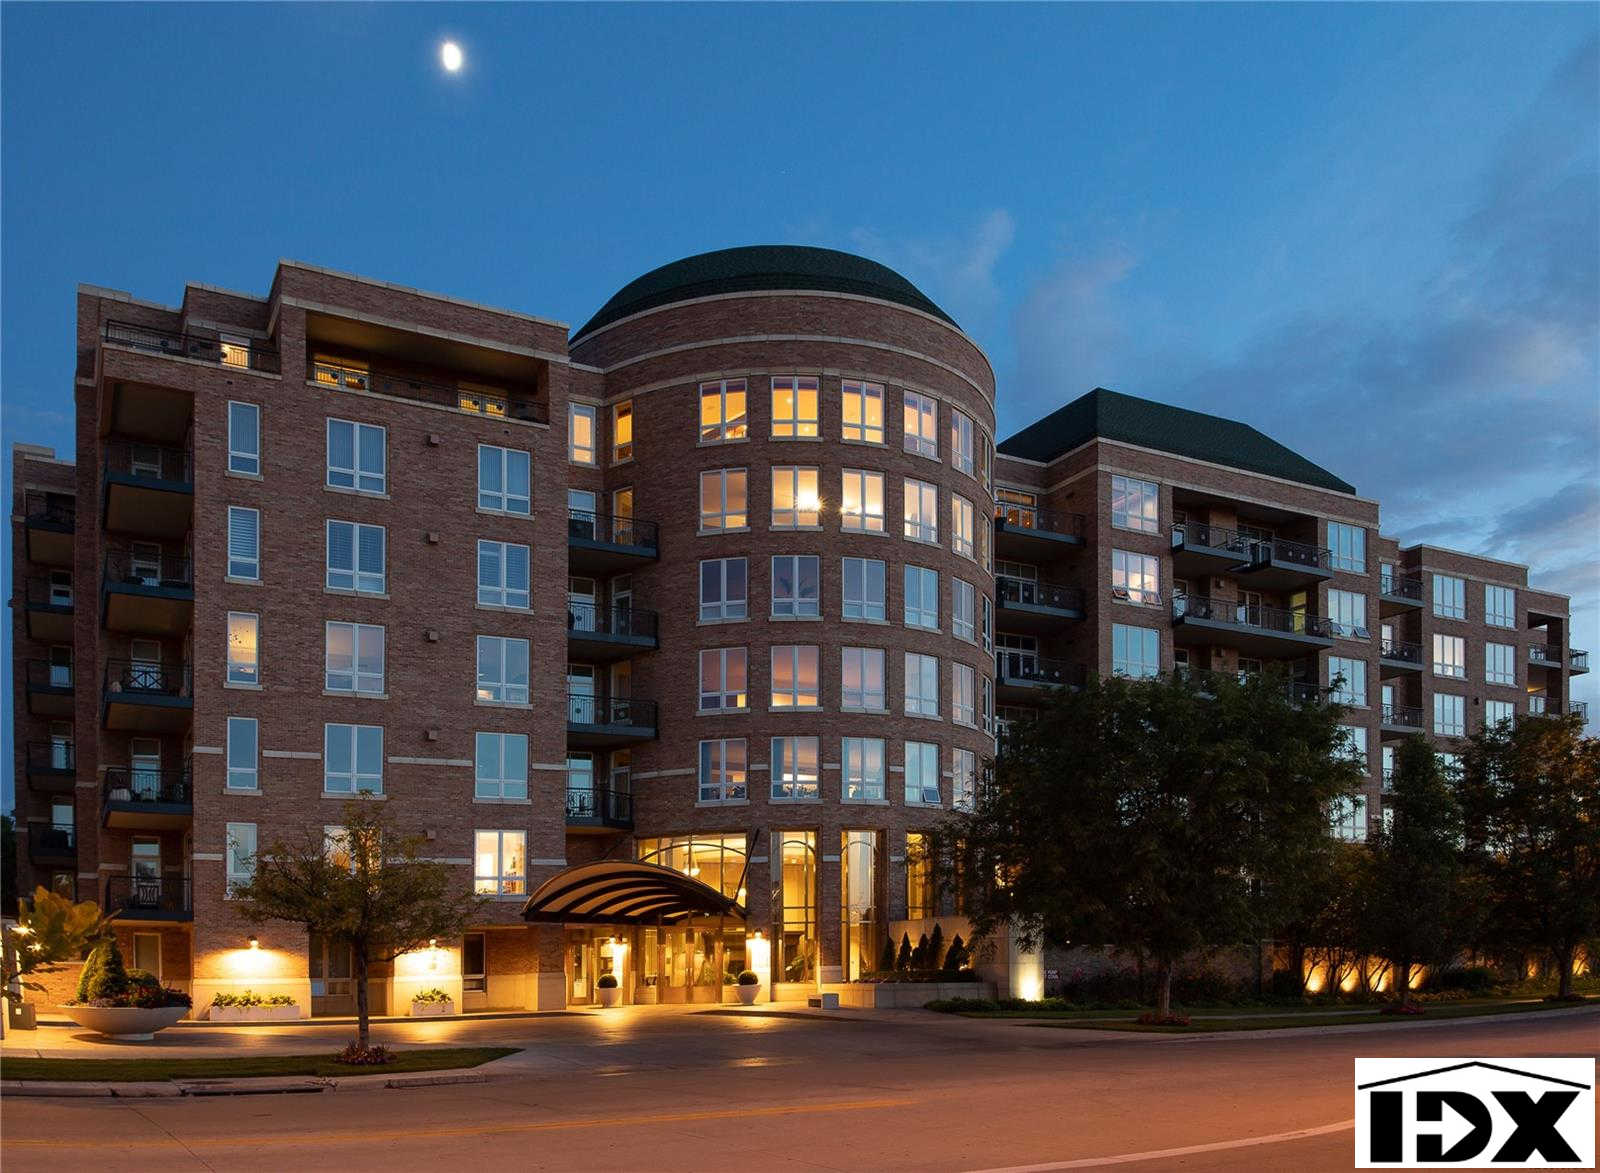 2400 East Cherry Creek South Drive #701, Denver, CO 80209 now has a new price of $4,850,000!